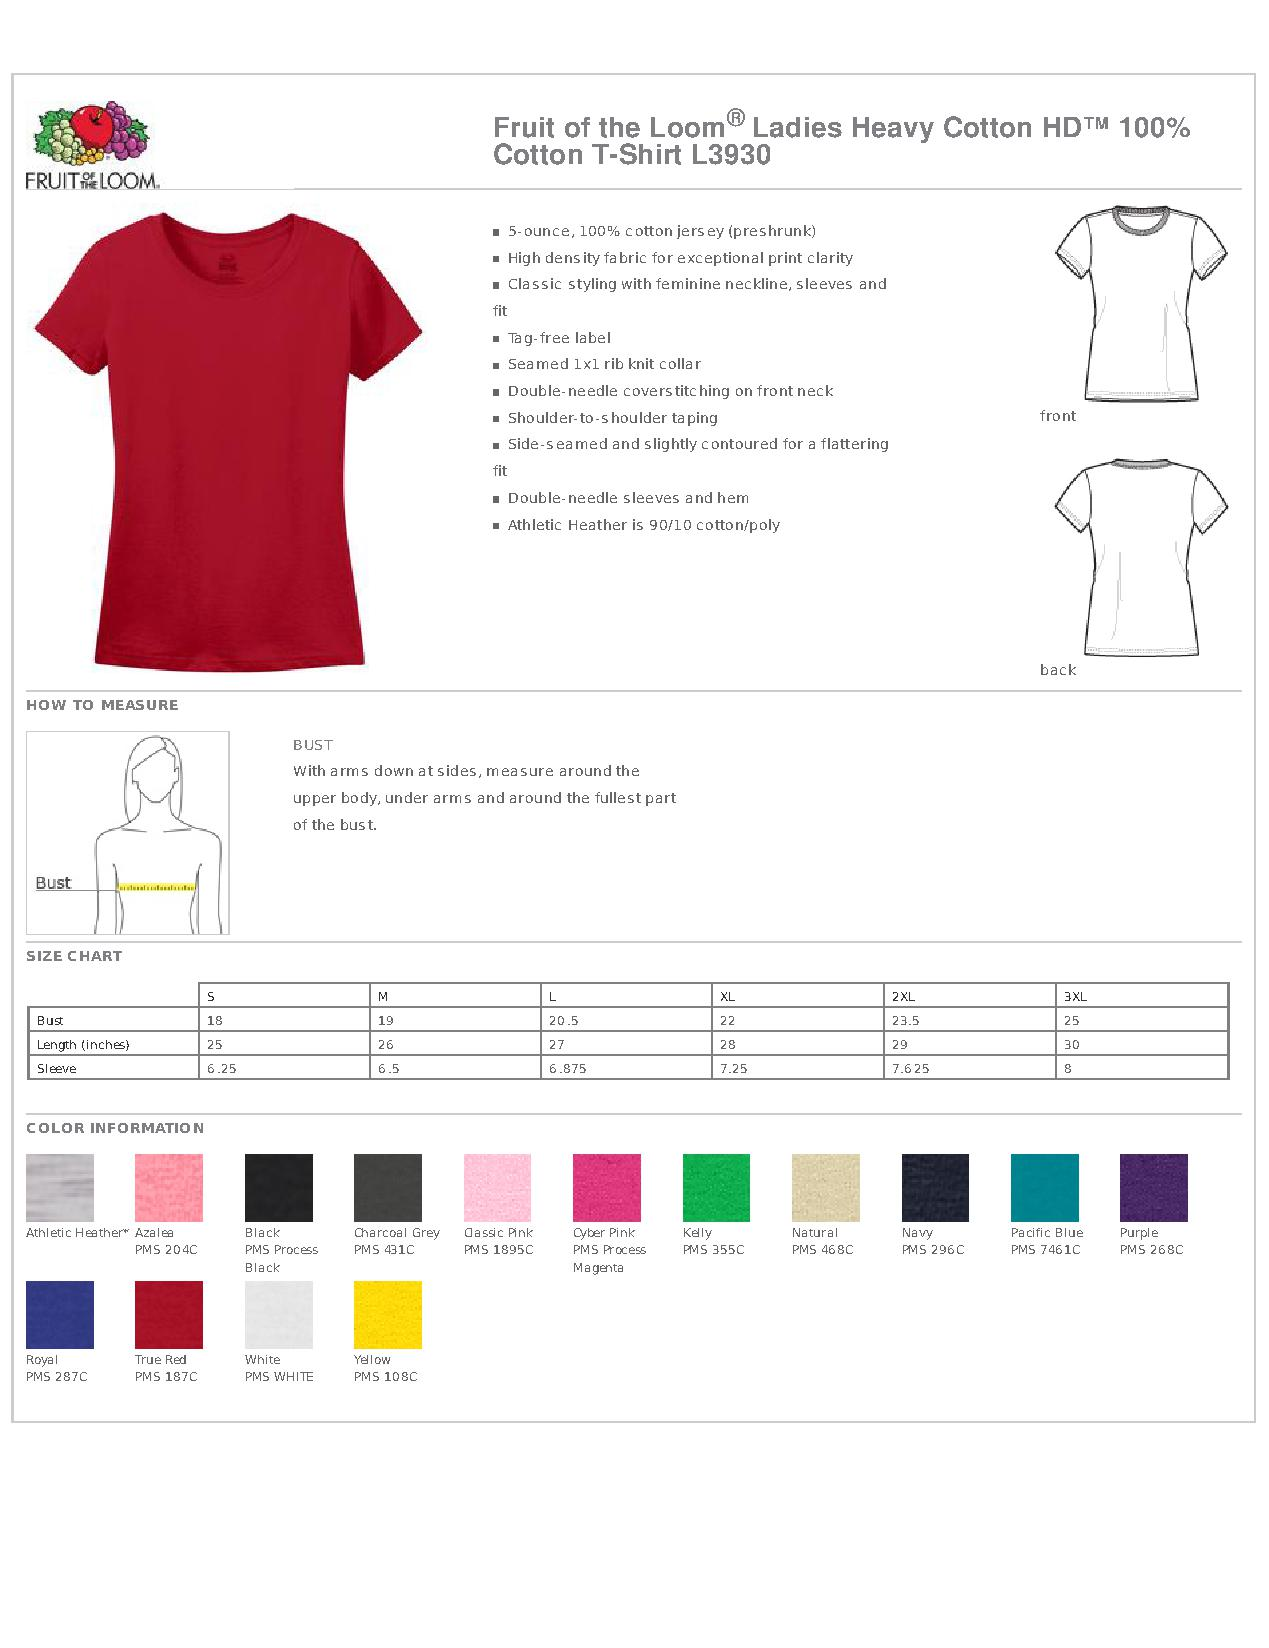 fruit of the loom cotton premium size chart: Fruit of the loom cotton premium size chart lo fi shop ratelco com